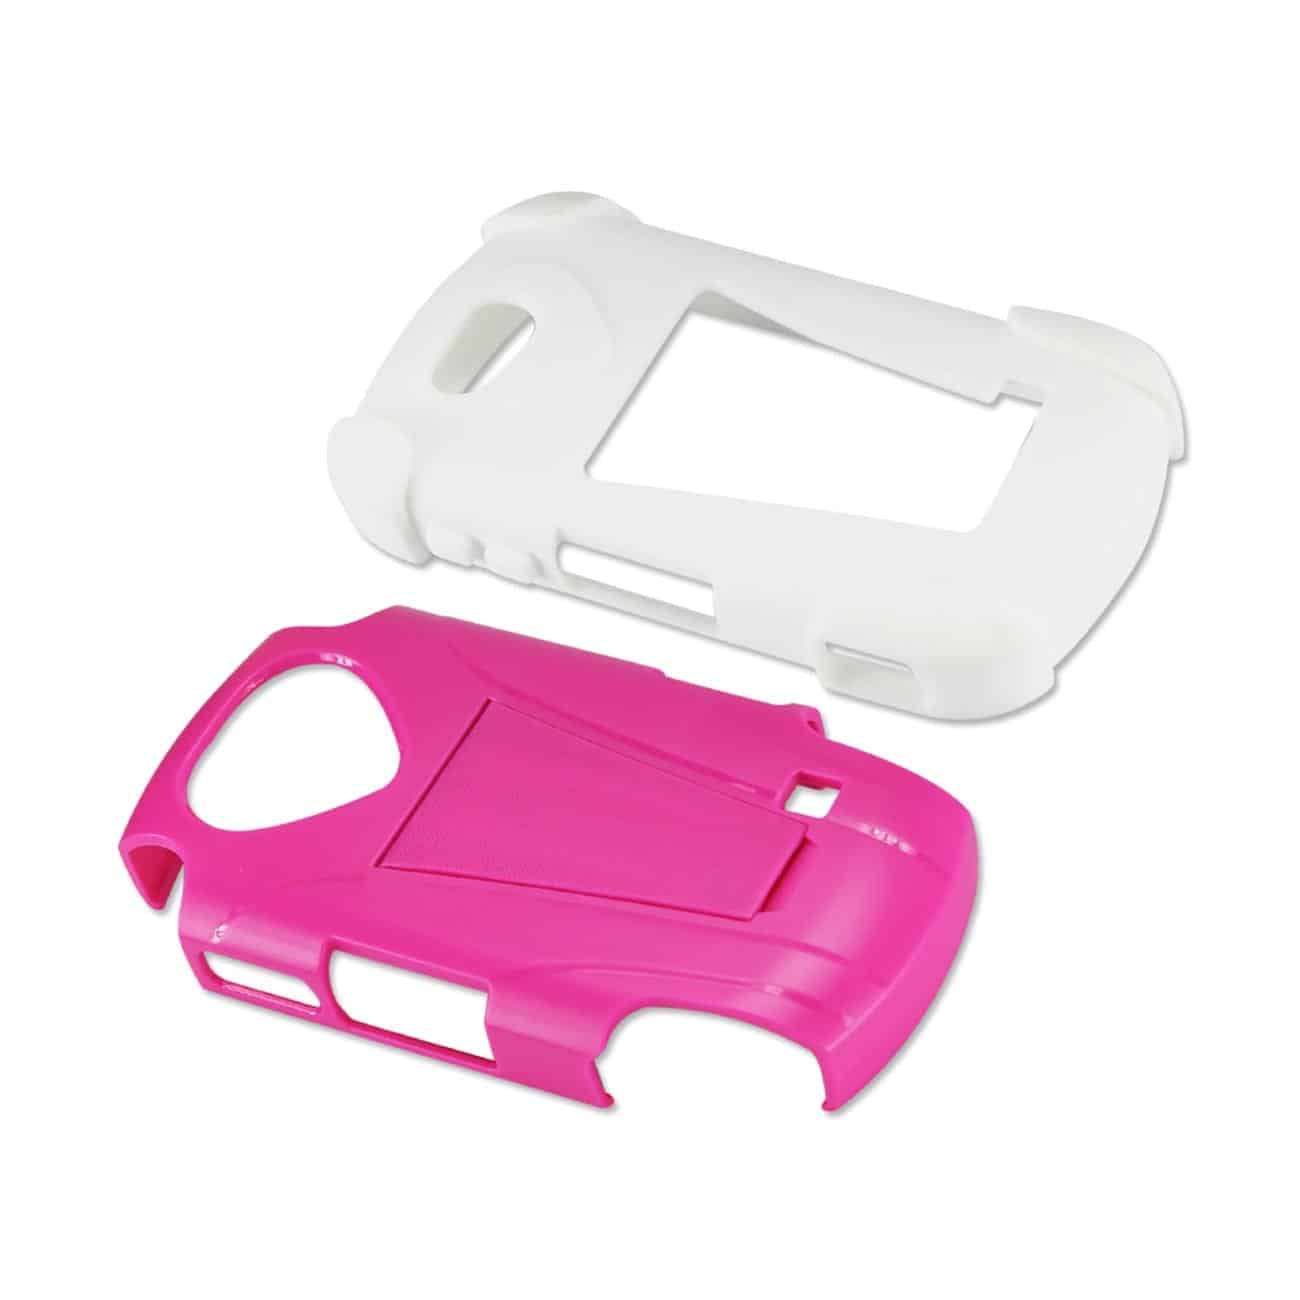 ZTE GROOVE HYBRID HEAVY DUTY CASE WITH KICKSTAND IN HOT PINK WHITE